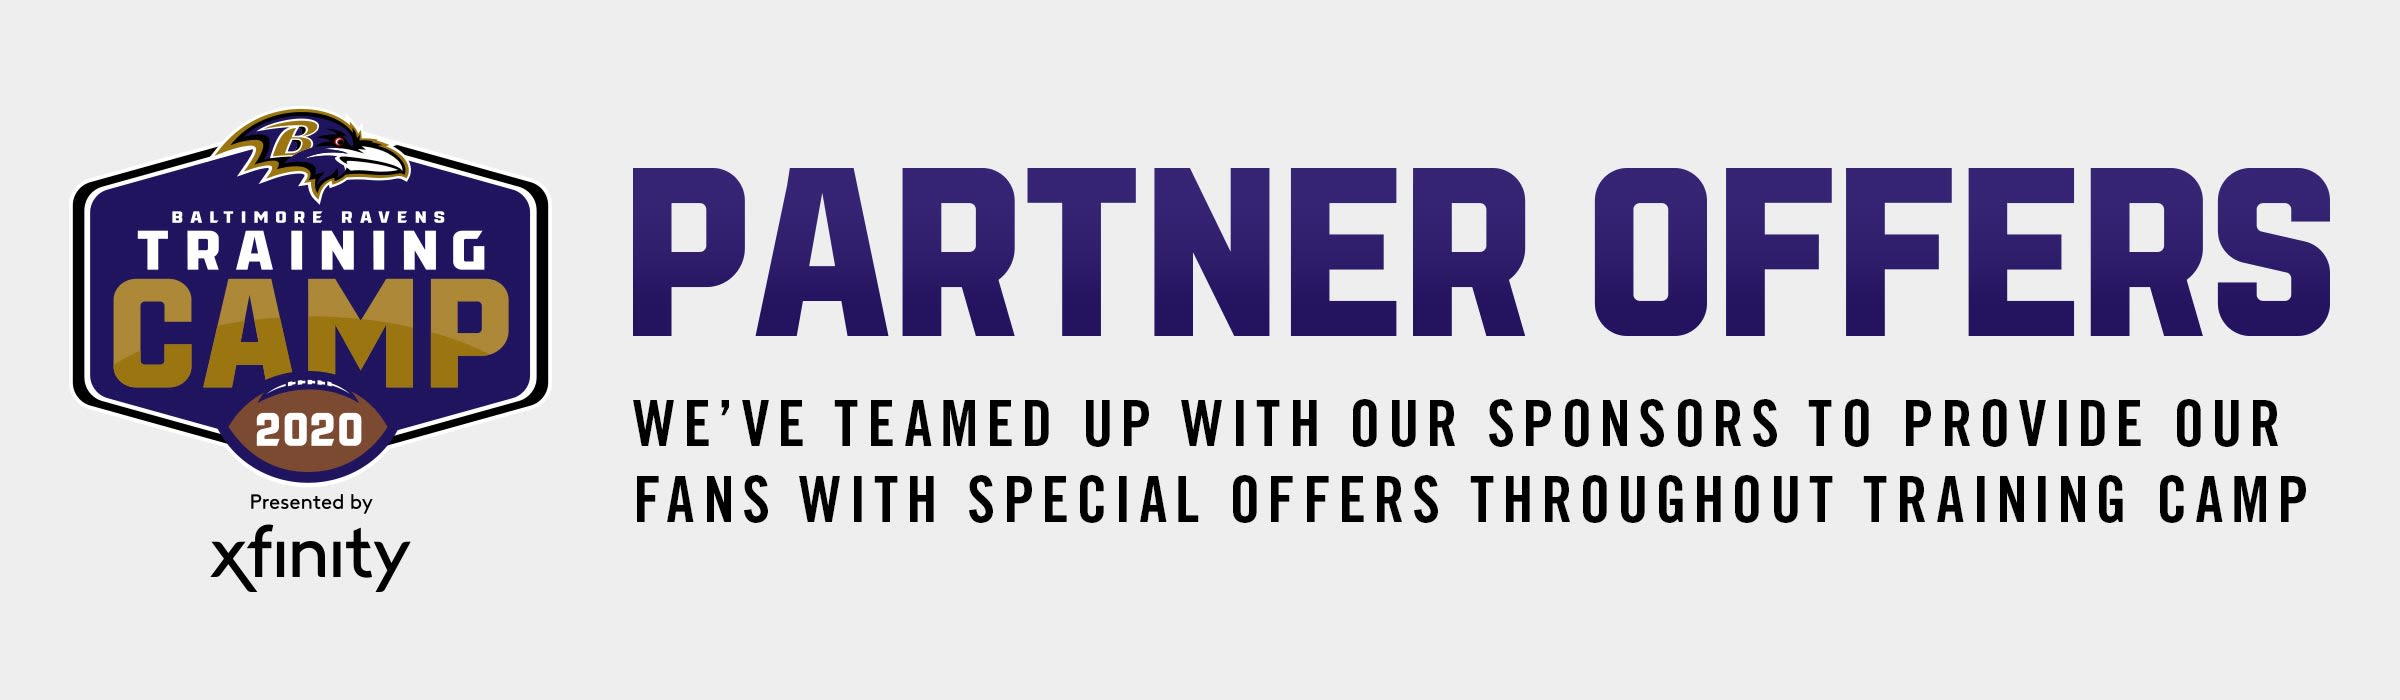 Baltimore Ravens 2020 Training Camp Partner Offers  We've teamed up with our sponsors to provide our fans with special offers throughout training camp